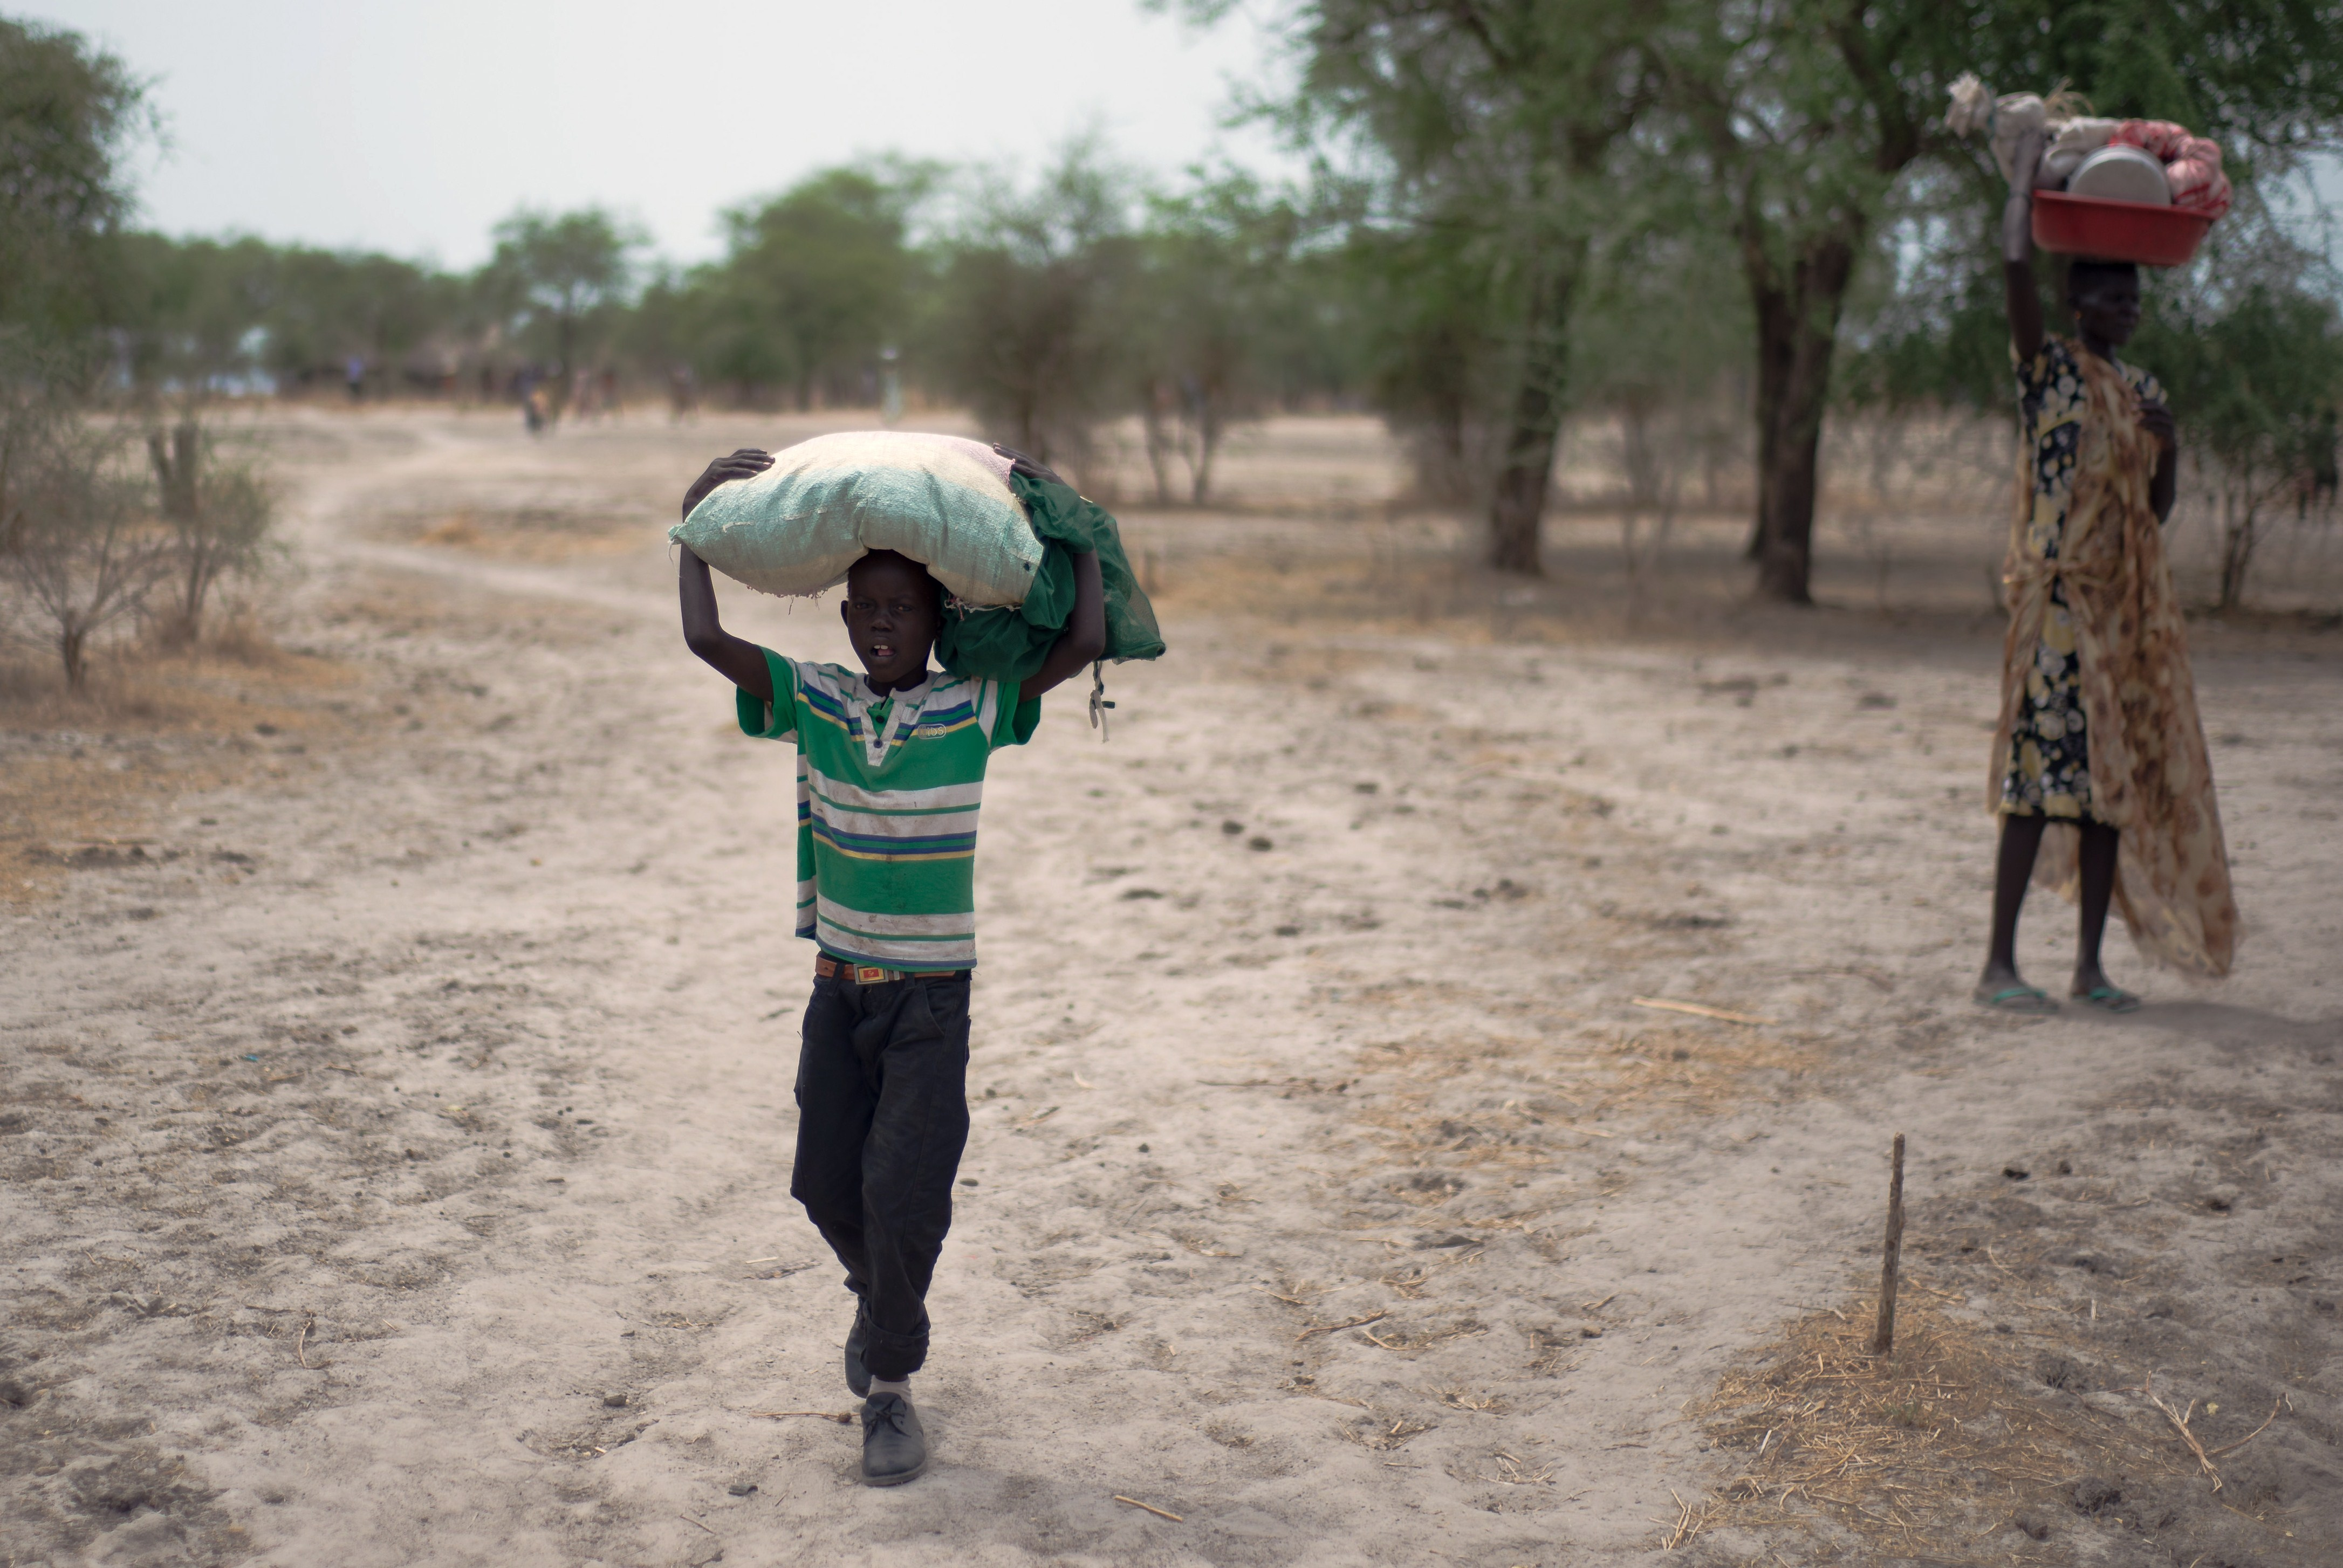 Two Internally Displaced People carry belongings on their heads in Kuernynag in Jonglei State, which borders Upper Nile State and Unity State, on May 2, 2015